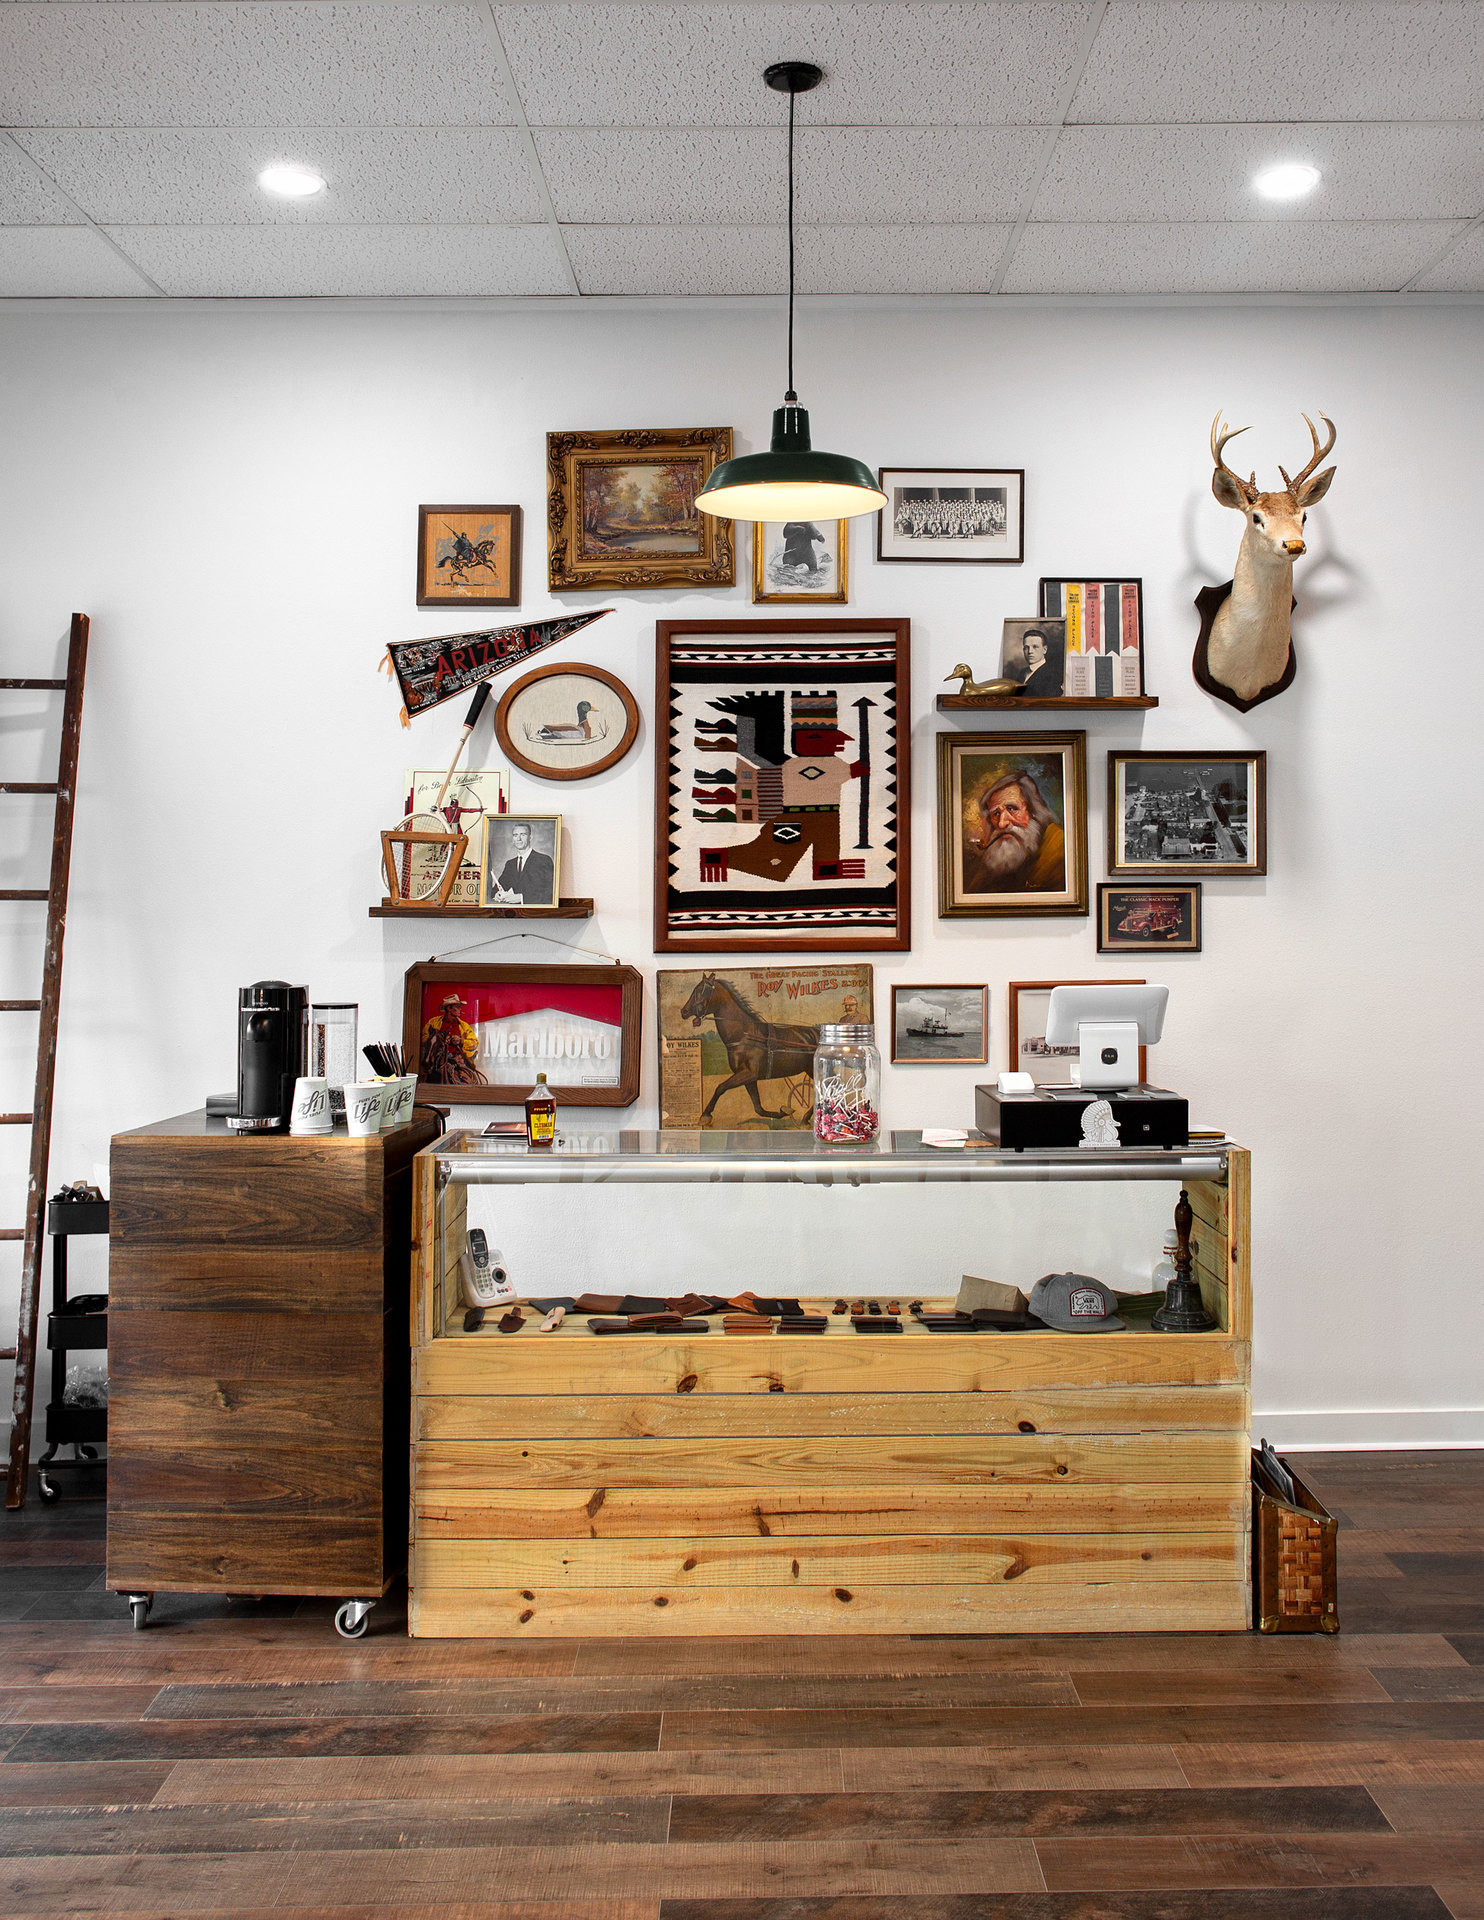 The cozy and relaxed atmosphere with eclectic artwork and wood floors at River & Main Barber Shop in Titusville, FL, featuring The Original™ Warehouse Pendant.